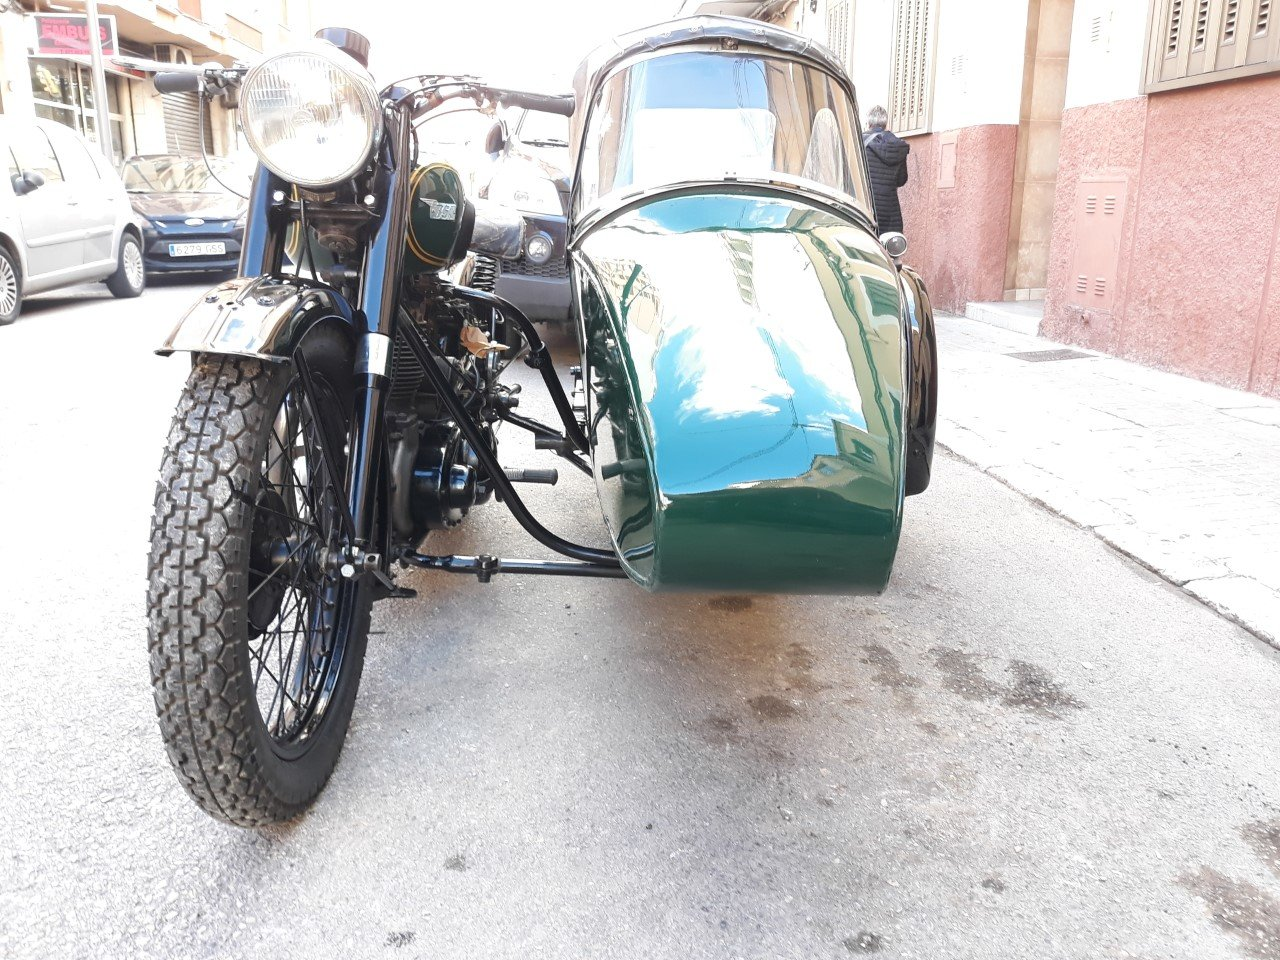 1954 BSA M21  600cc  year  with  sidecar - v.g.c. For Sale (picture 3 of 6)